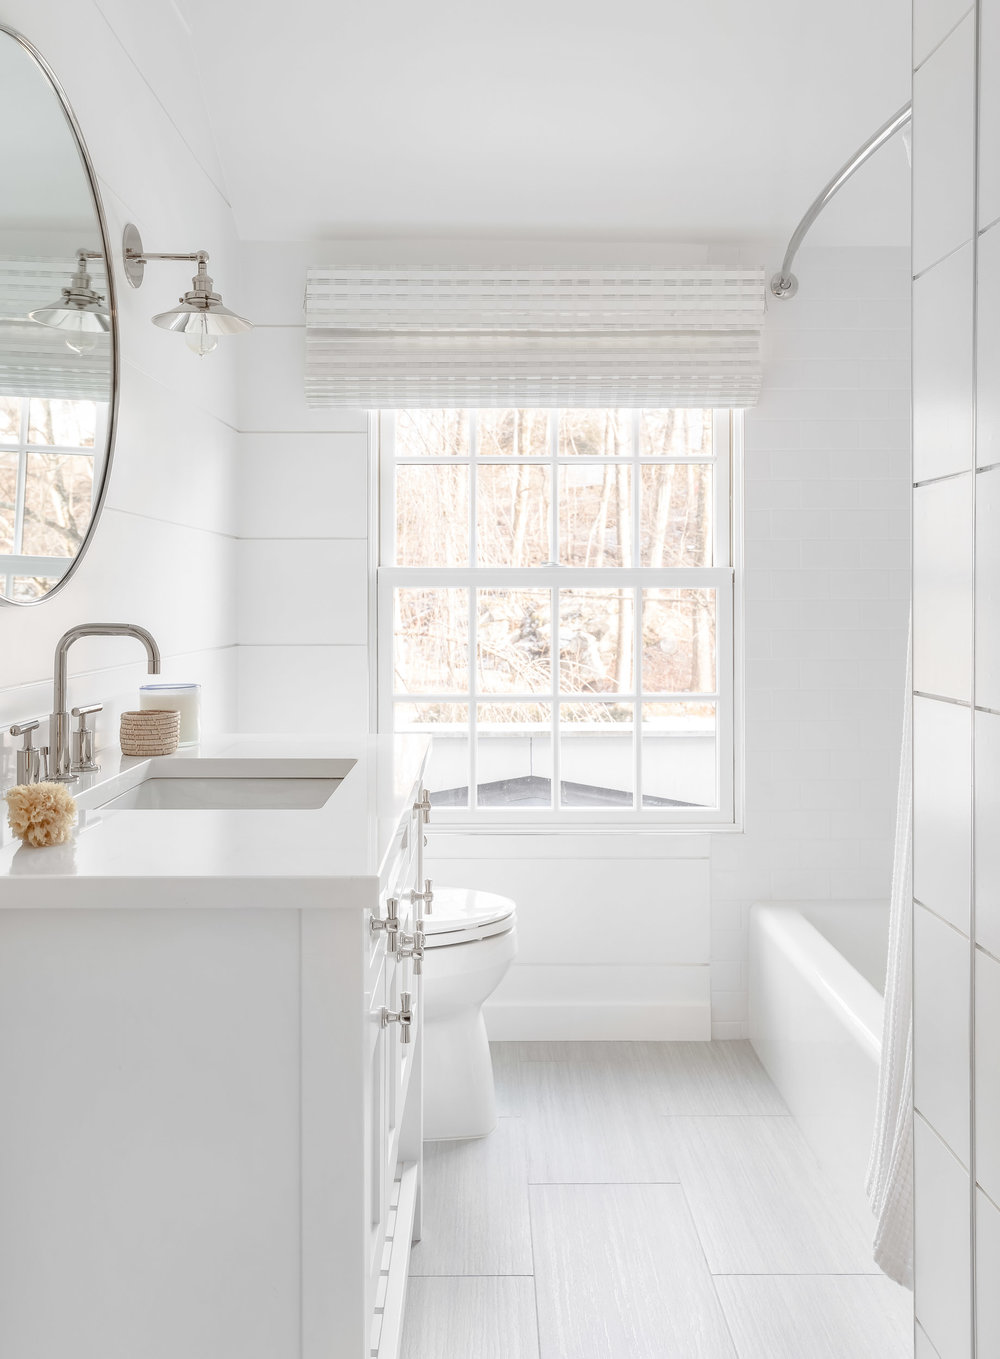 parker and parker design-interior design photography-darien ct-white & grey bathroom-shiplap walls.jpg